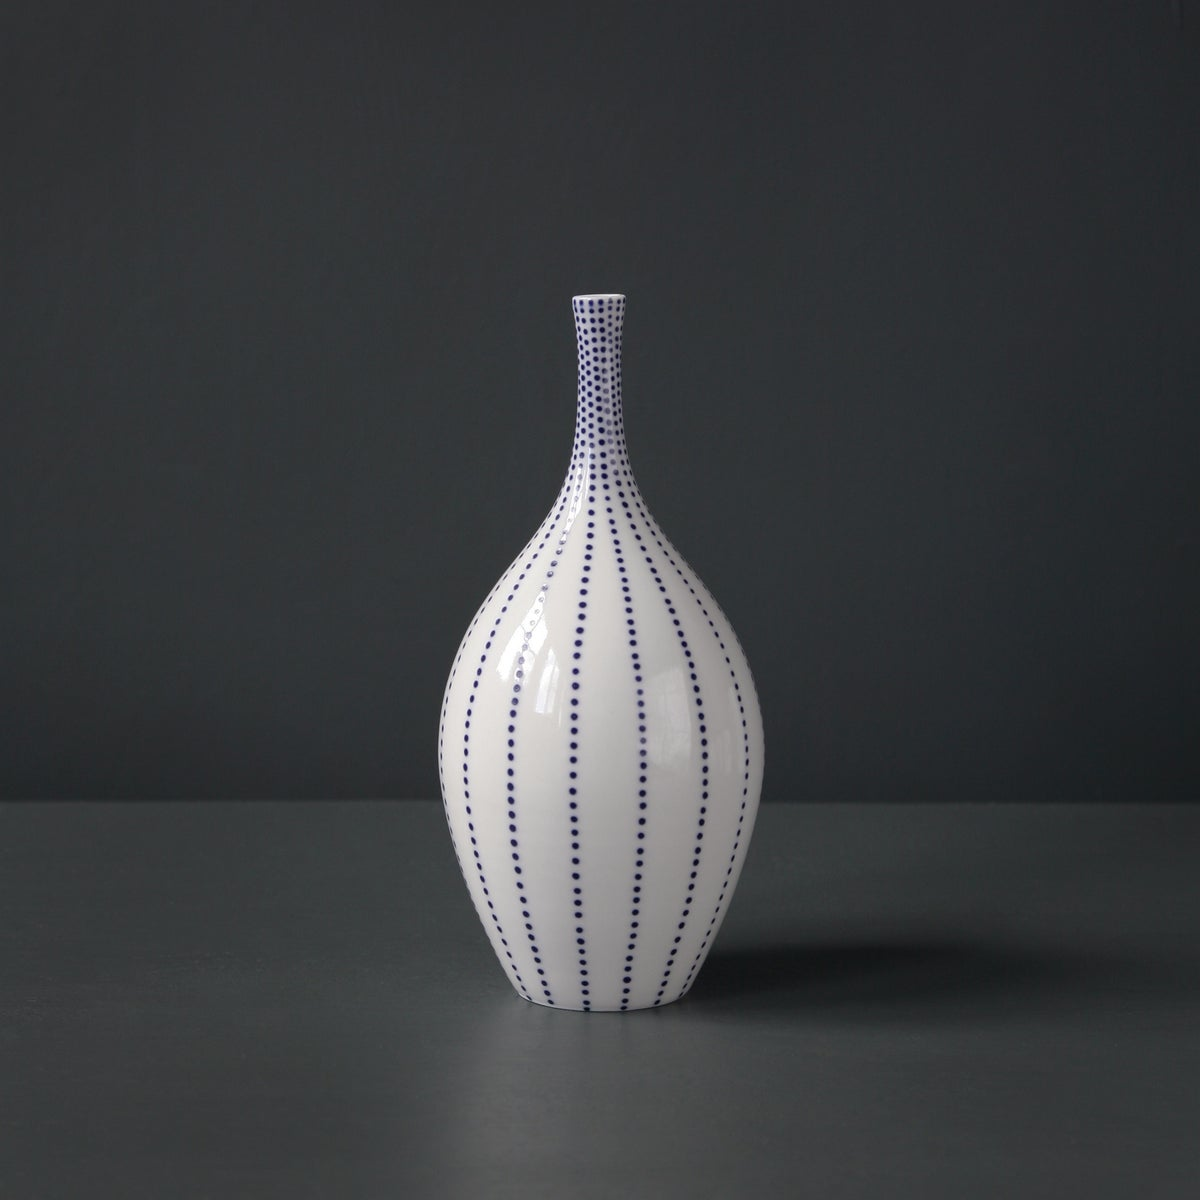 Image of Medium 'Dotty' Bottle Form by Rhian Malin